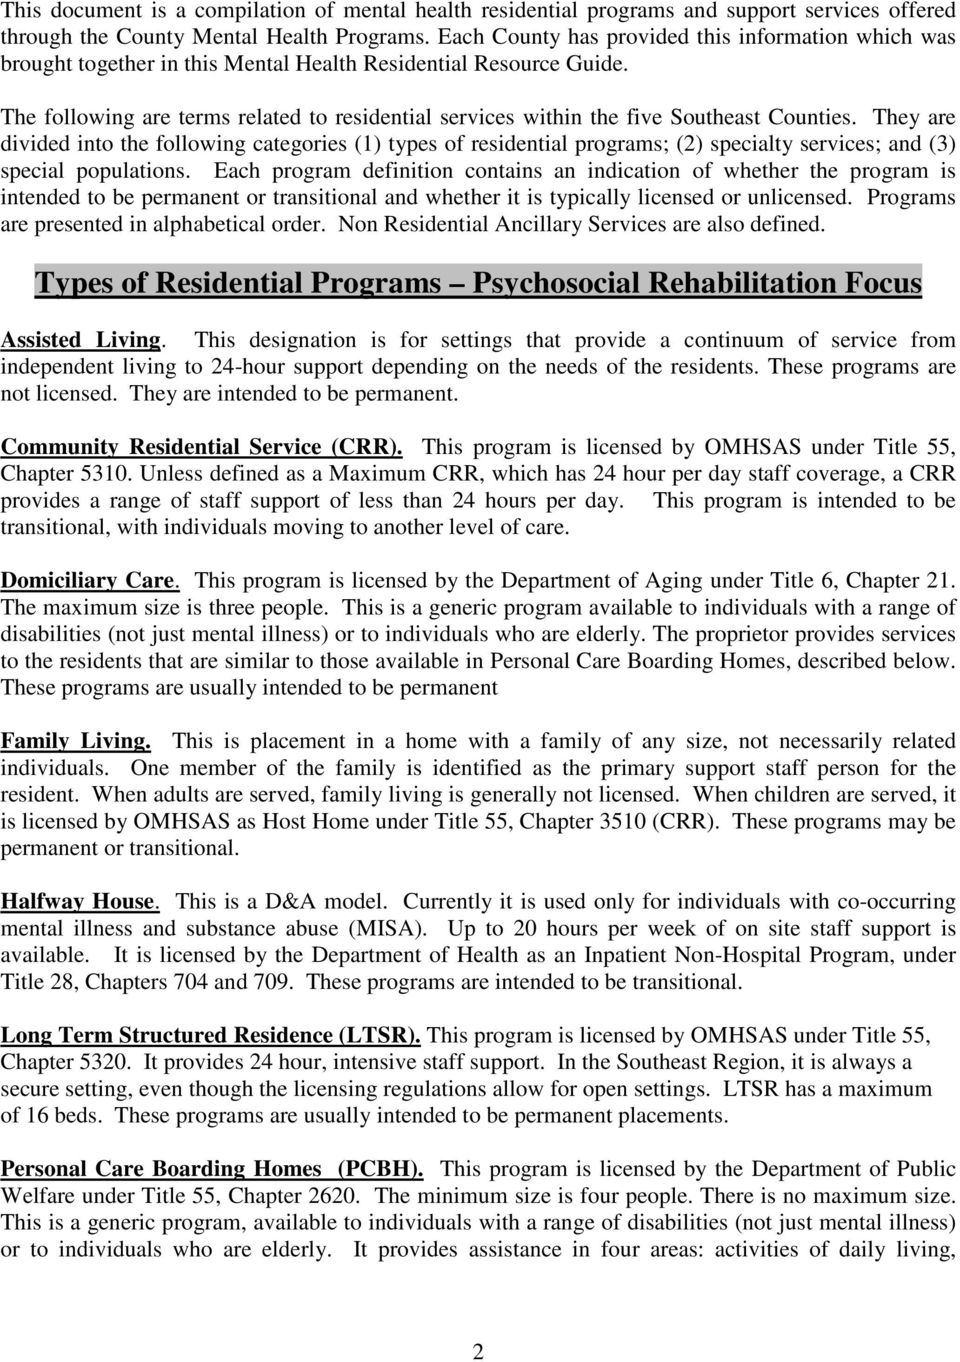 The following are terms related to residential services within the five Southeast Counties.